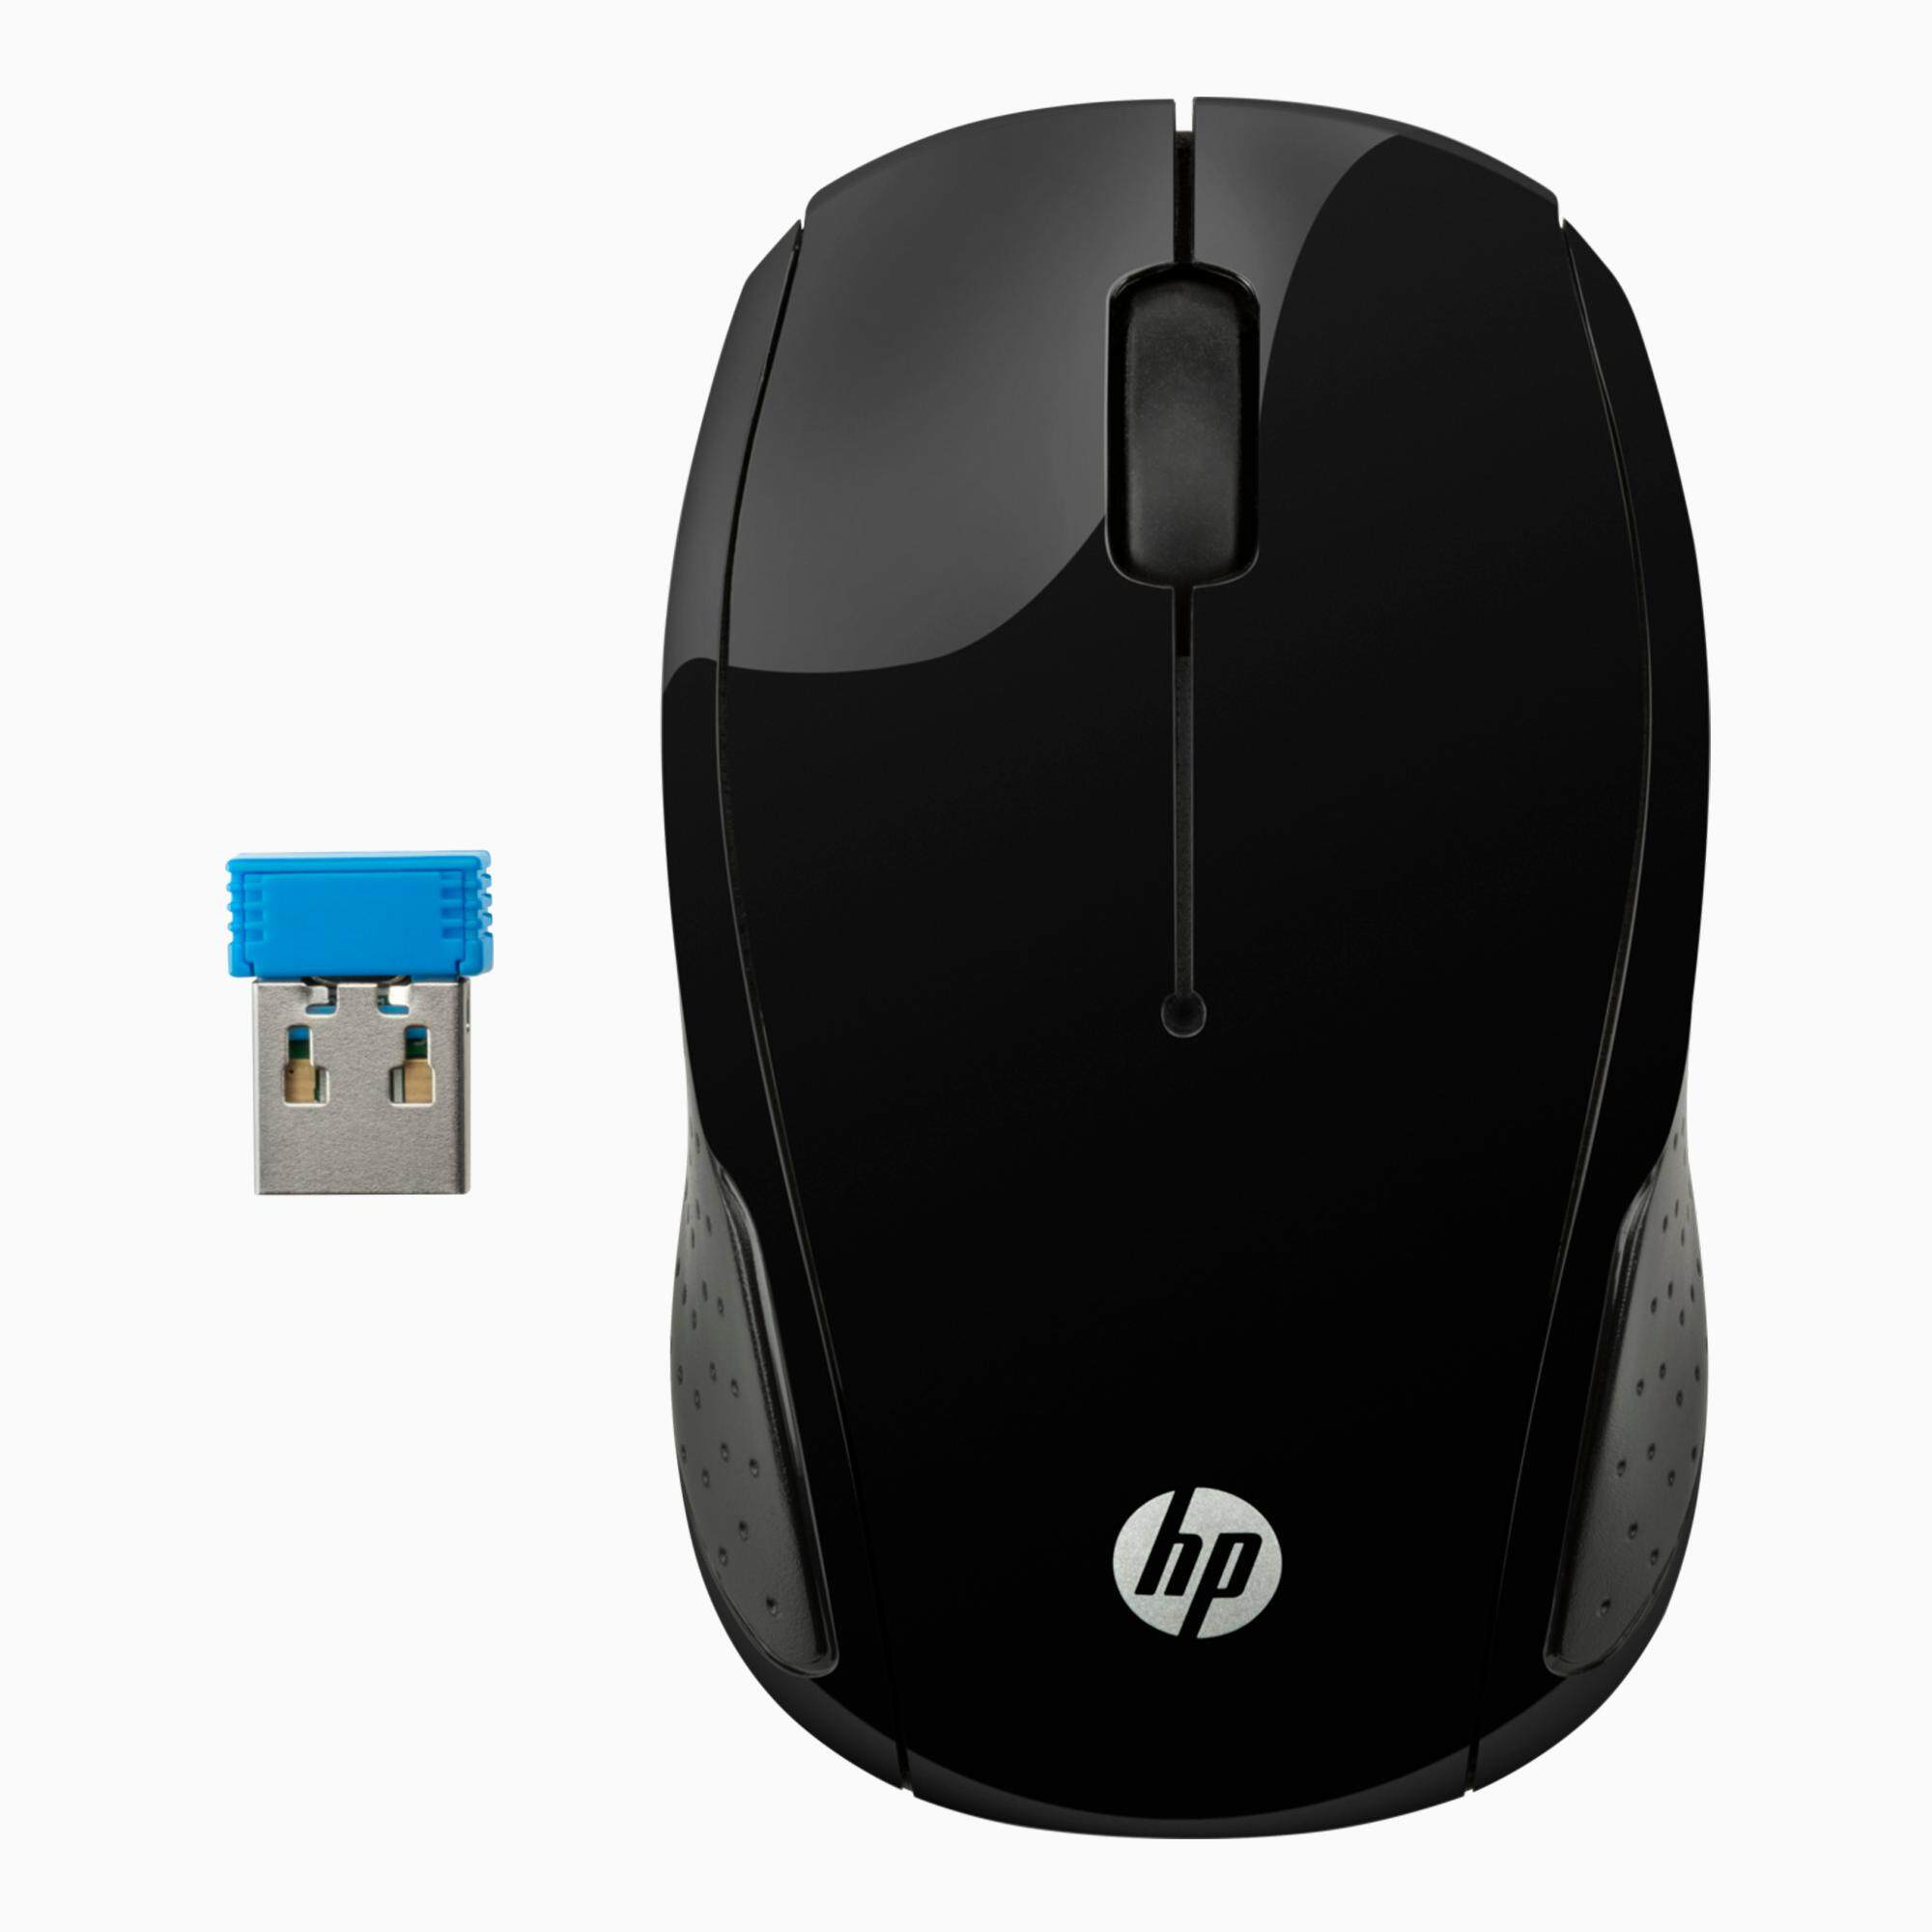 HP 200 WIRELESS MOUSE BLACK - (X6W31AA) Malaysia